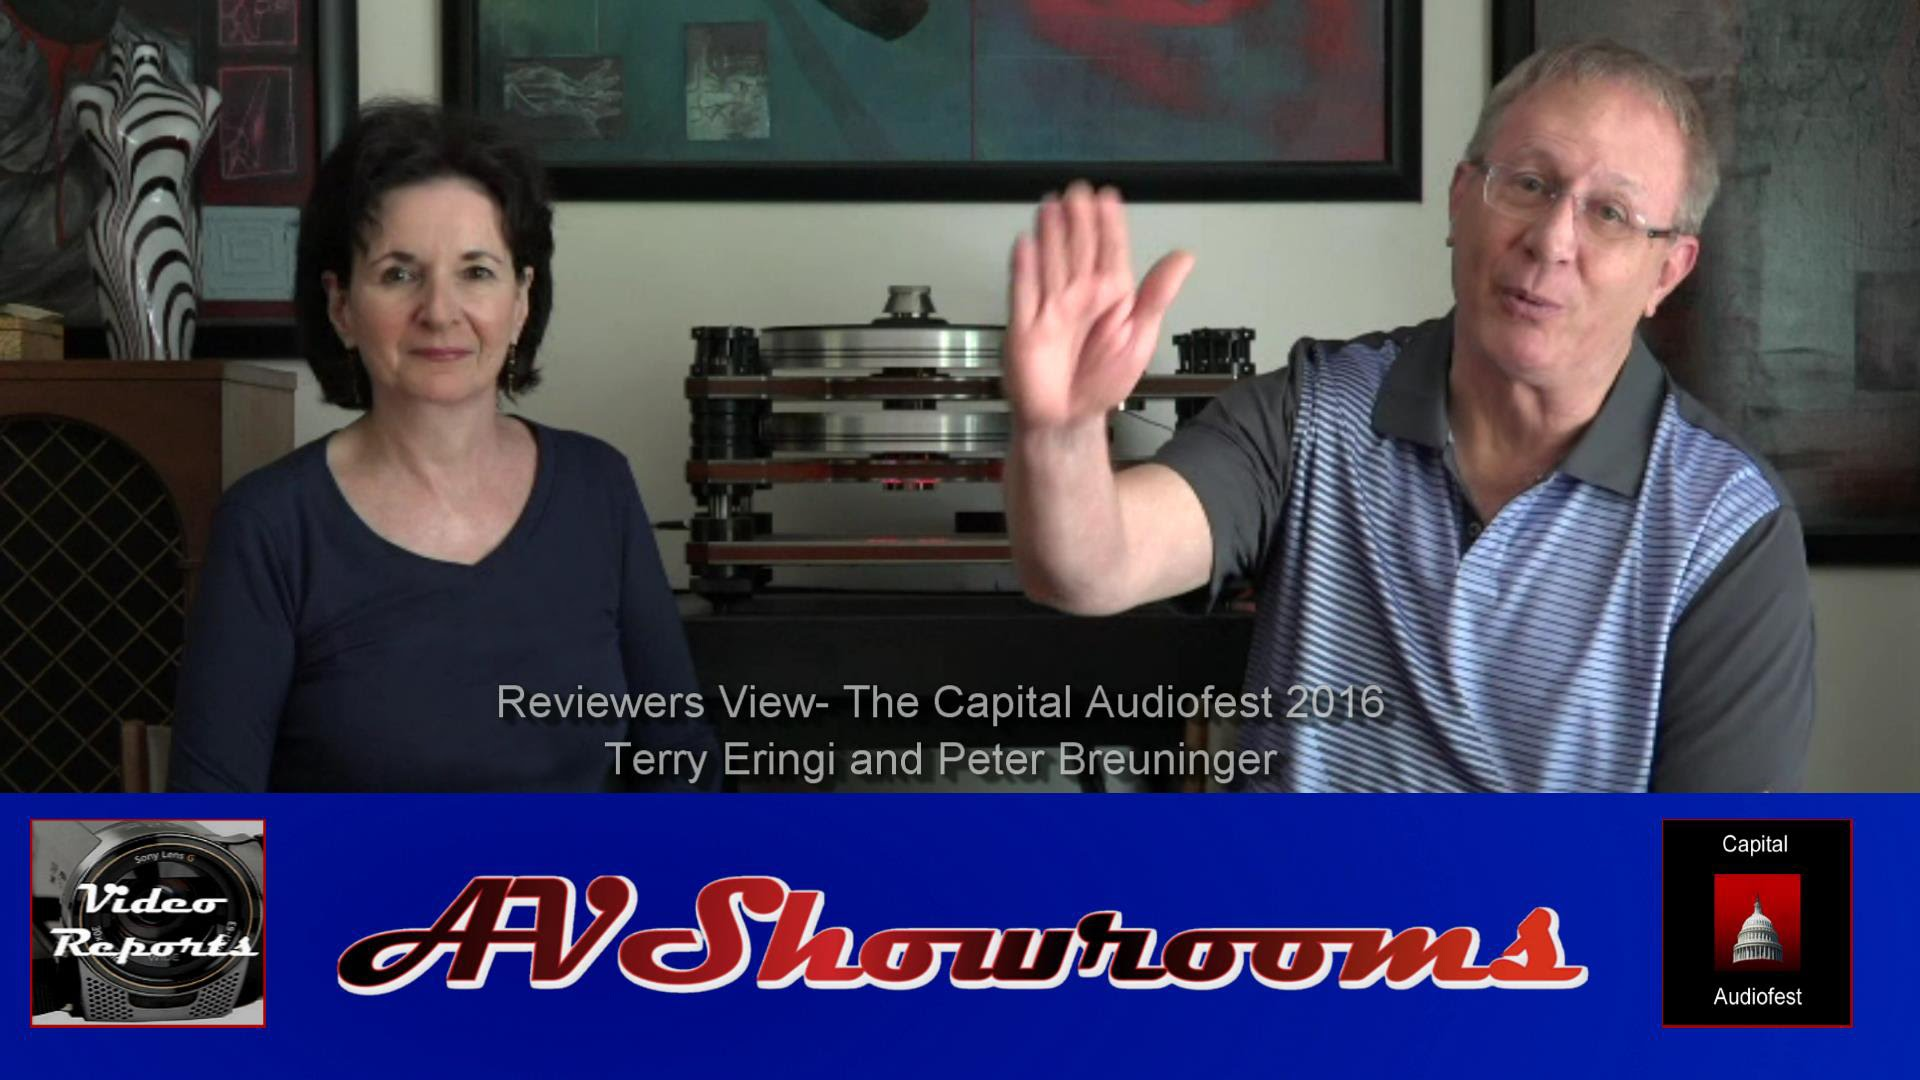 Capital Audiofest 2016 Awards